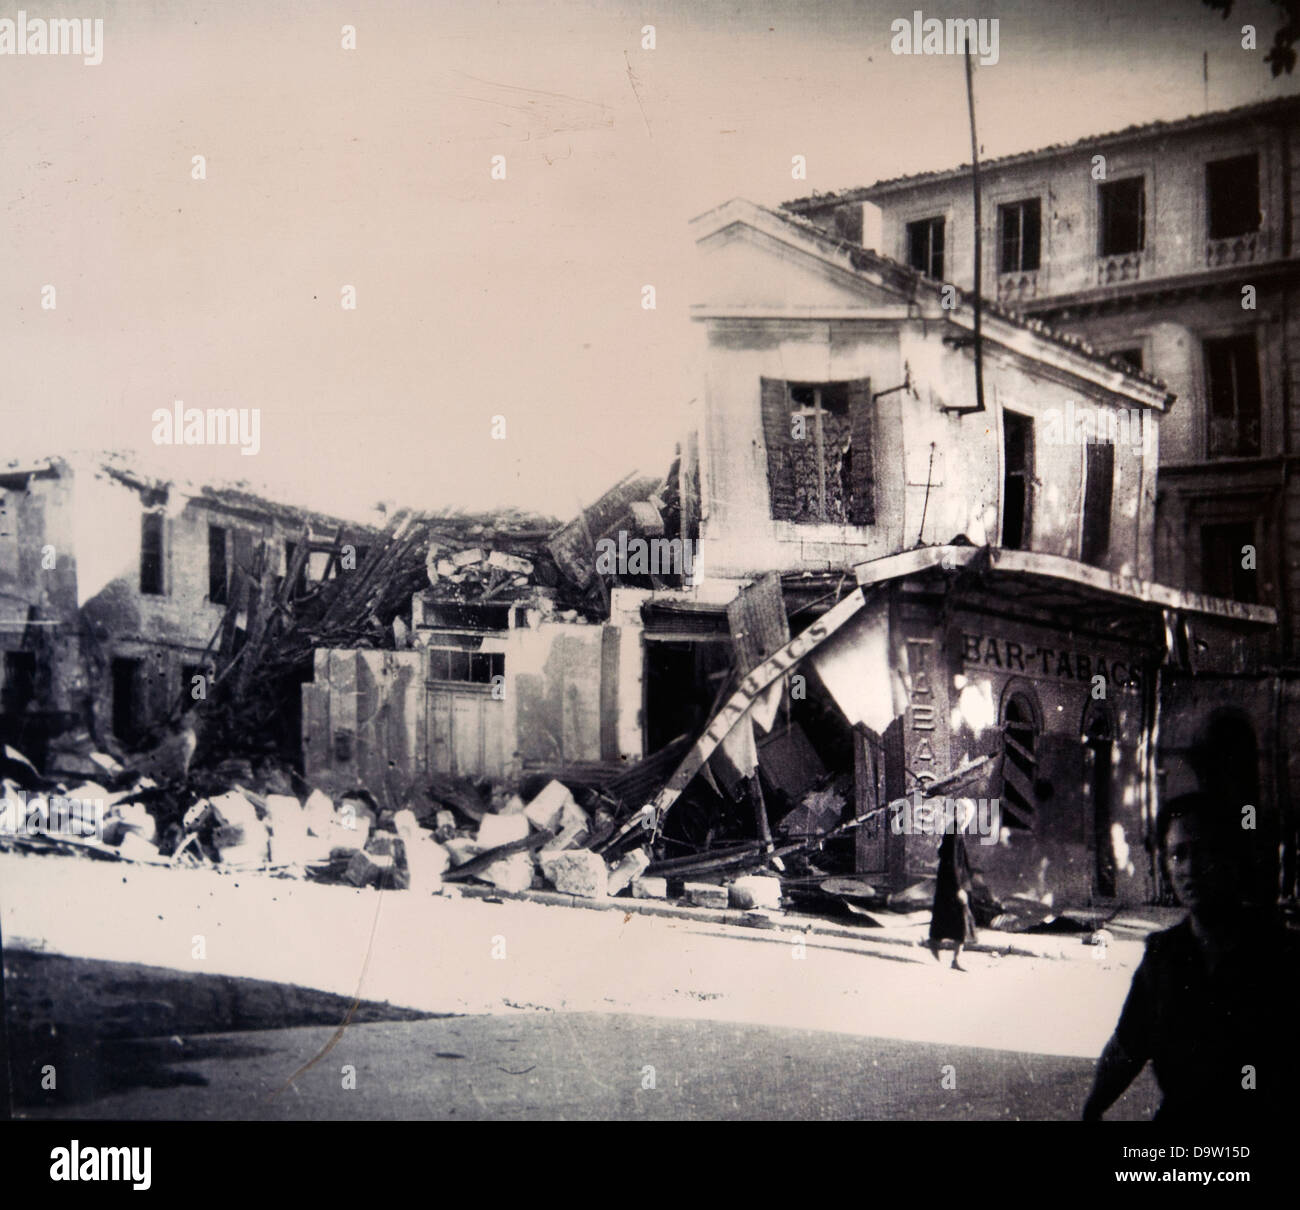 The Yellow House After The Bombing Place Lamartine